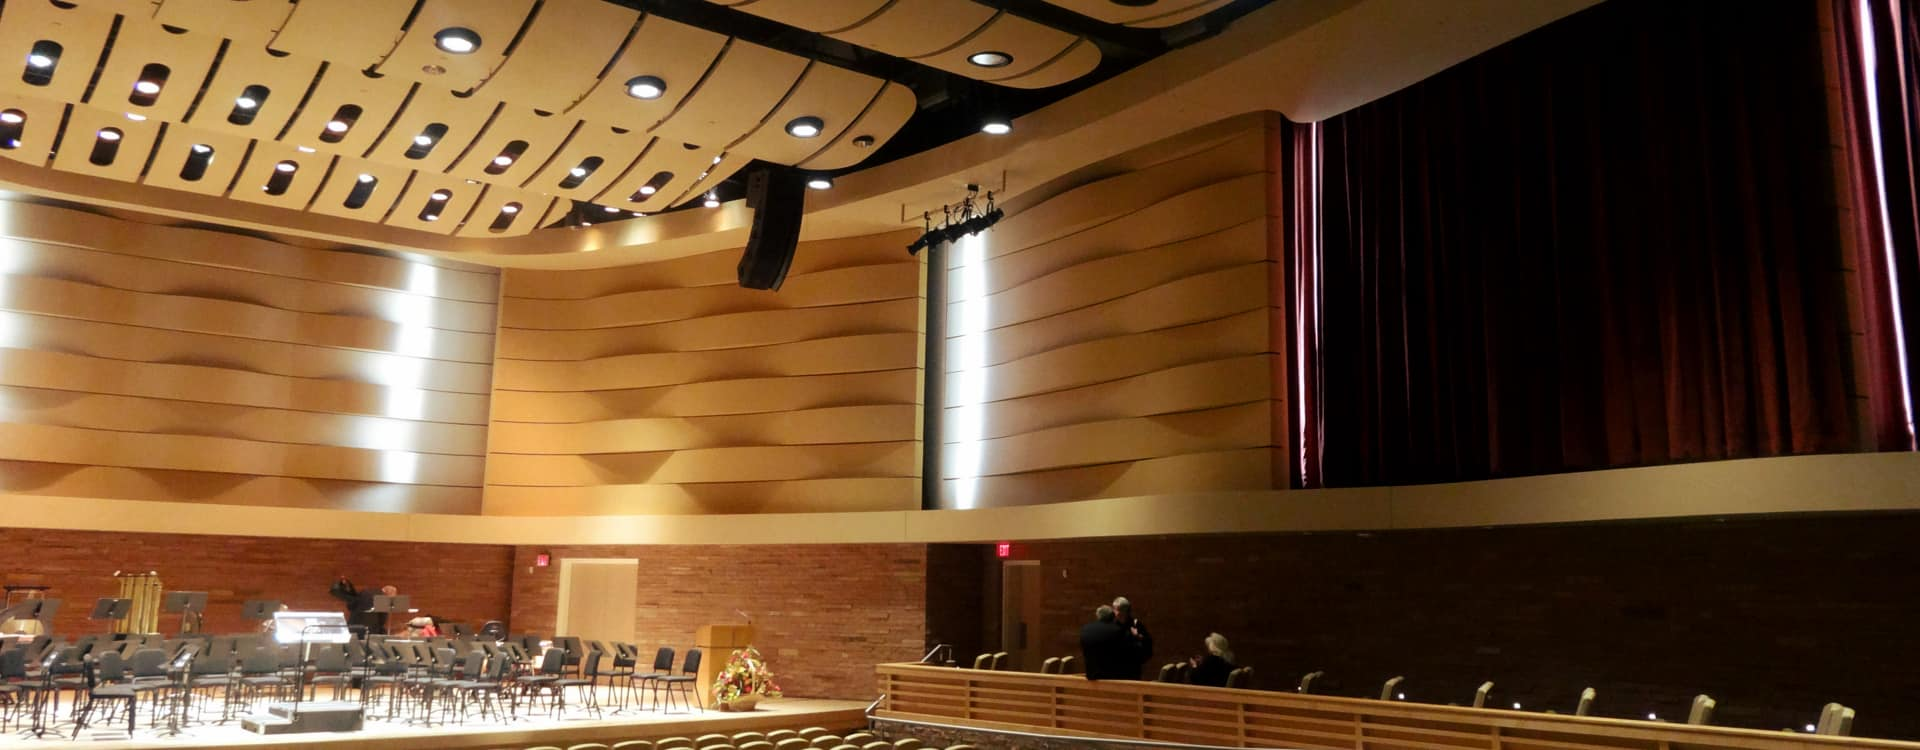 DLAA - D.L. Adams Associates, Architectural Acoustic and Acoustical Design, Audio Video Solutions, Architectural Acoustics, Auditorium acoustics, Mechanical Noise, and Vibration Control, On-Site Testing and Analysis, Acoustical Modeling, Expert Witness Testimony